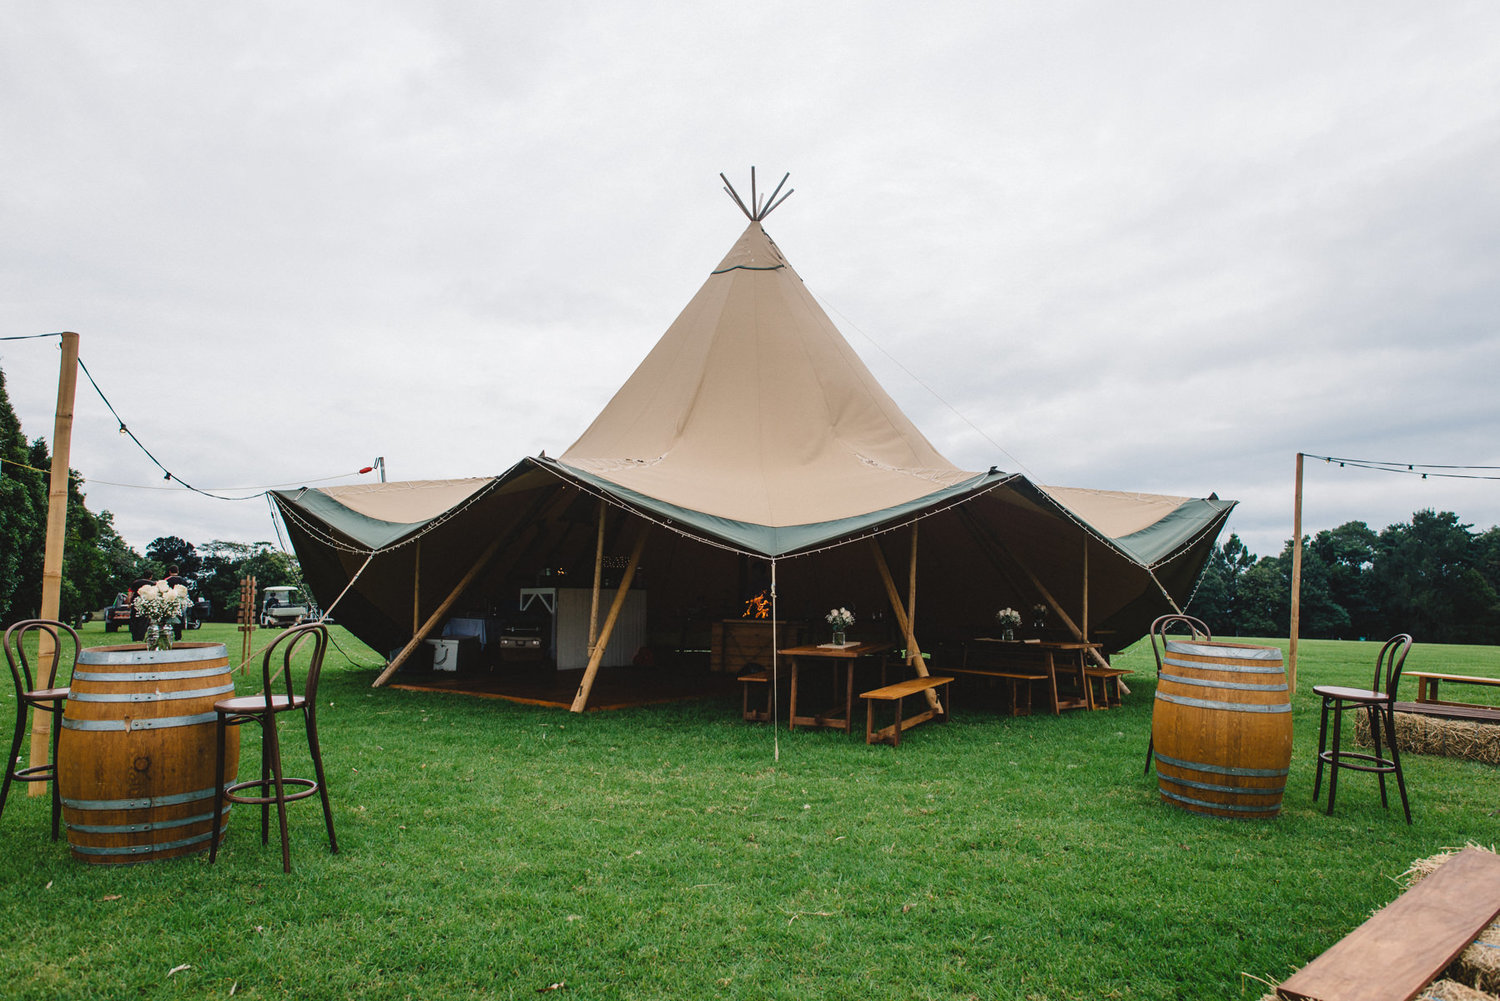 The beautiful Tipi Luxe tent